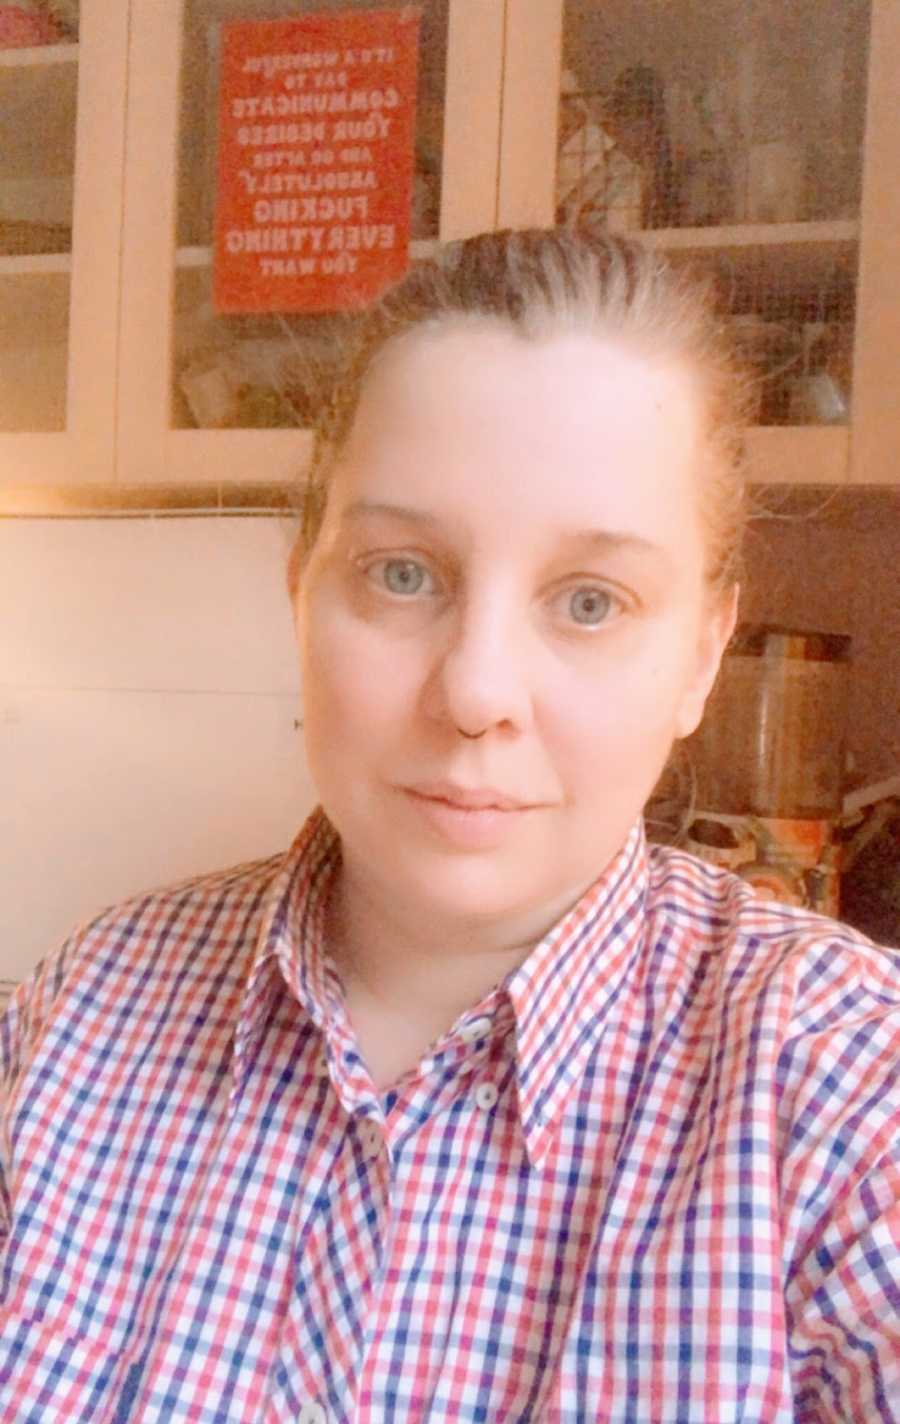 A nonbinary person wearing a red and blue checkered shirt